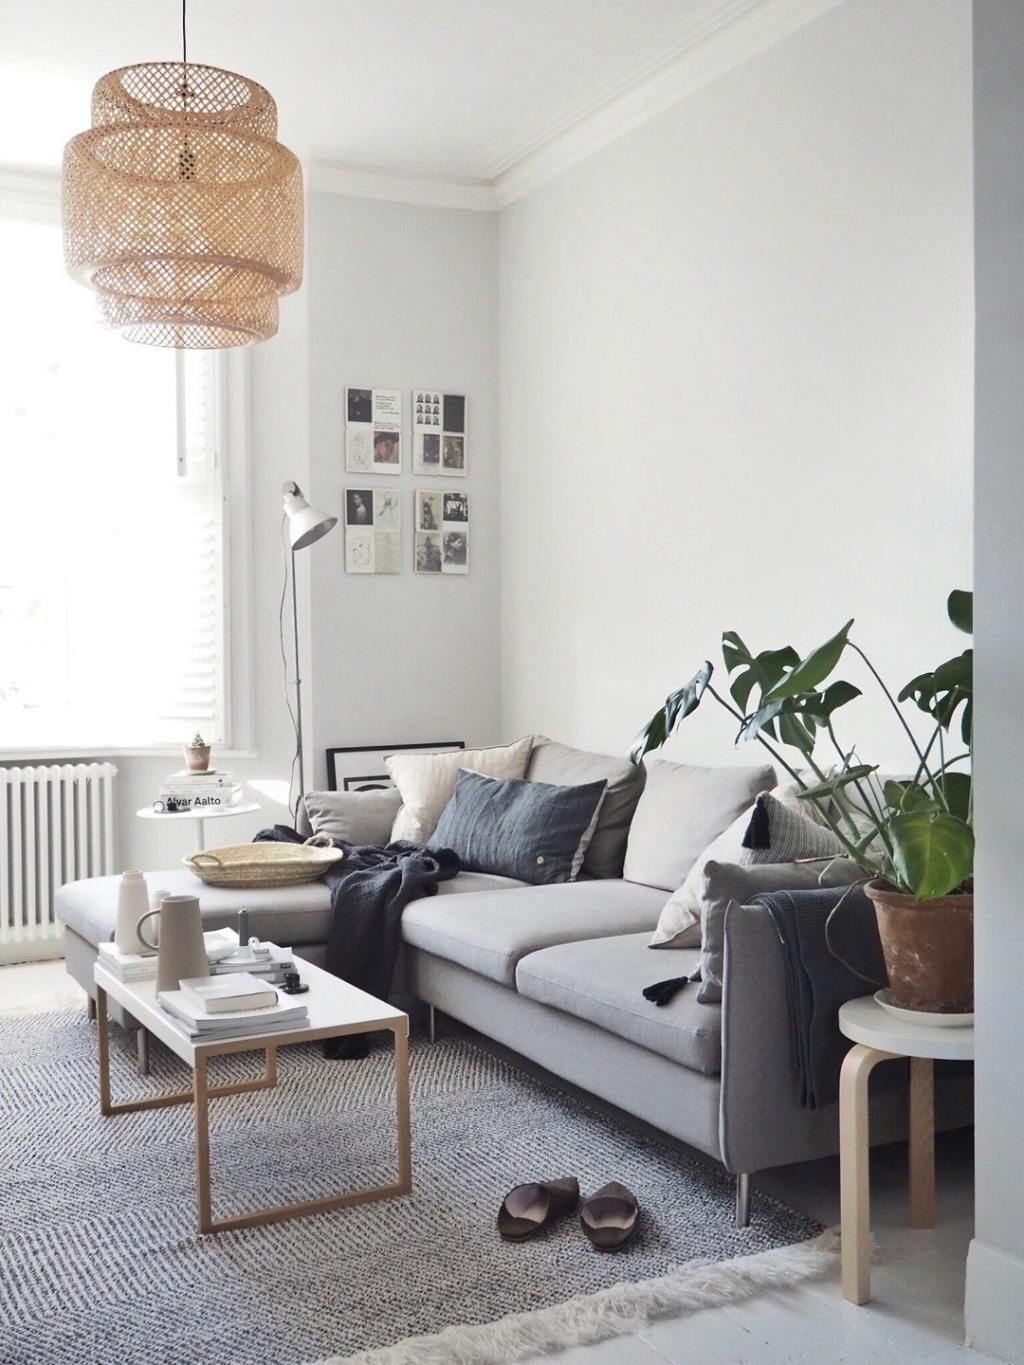 40 Stunning Small Space Living Room Ideas images